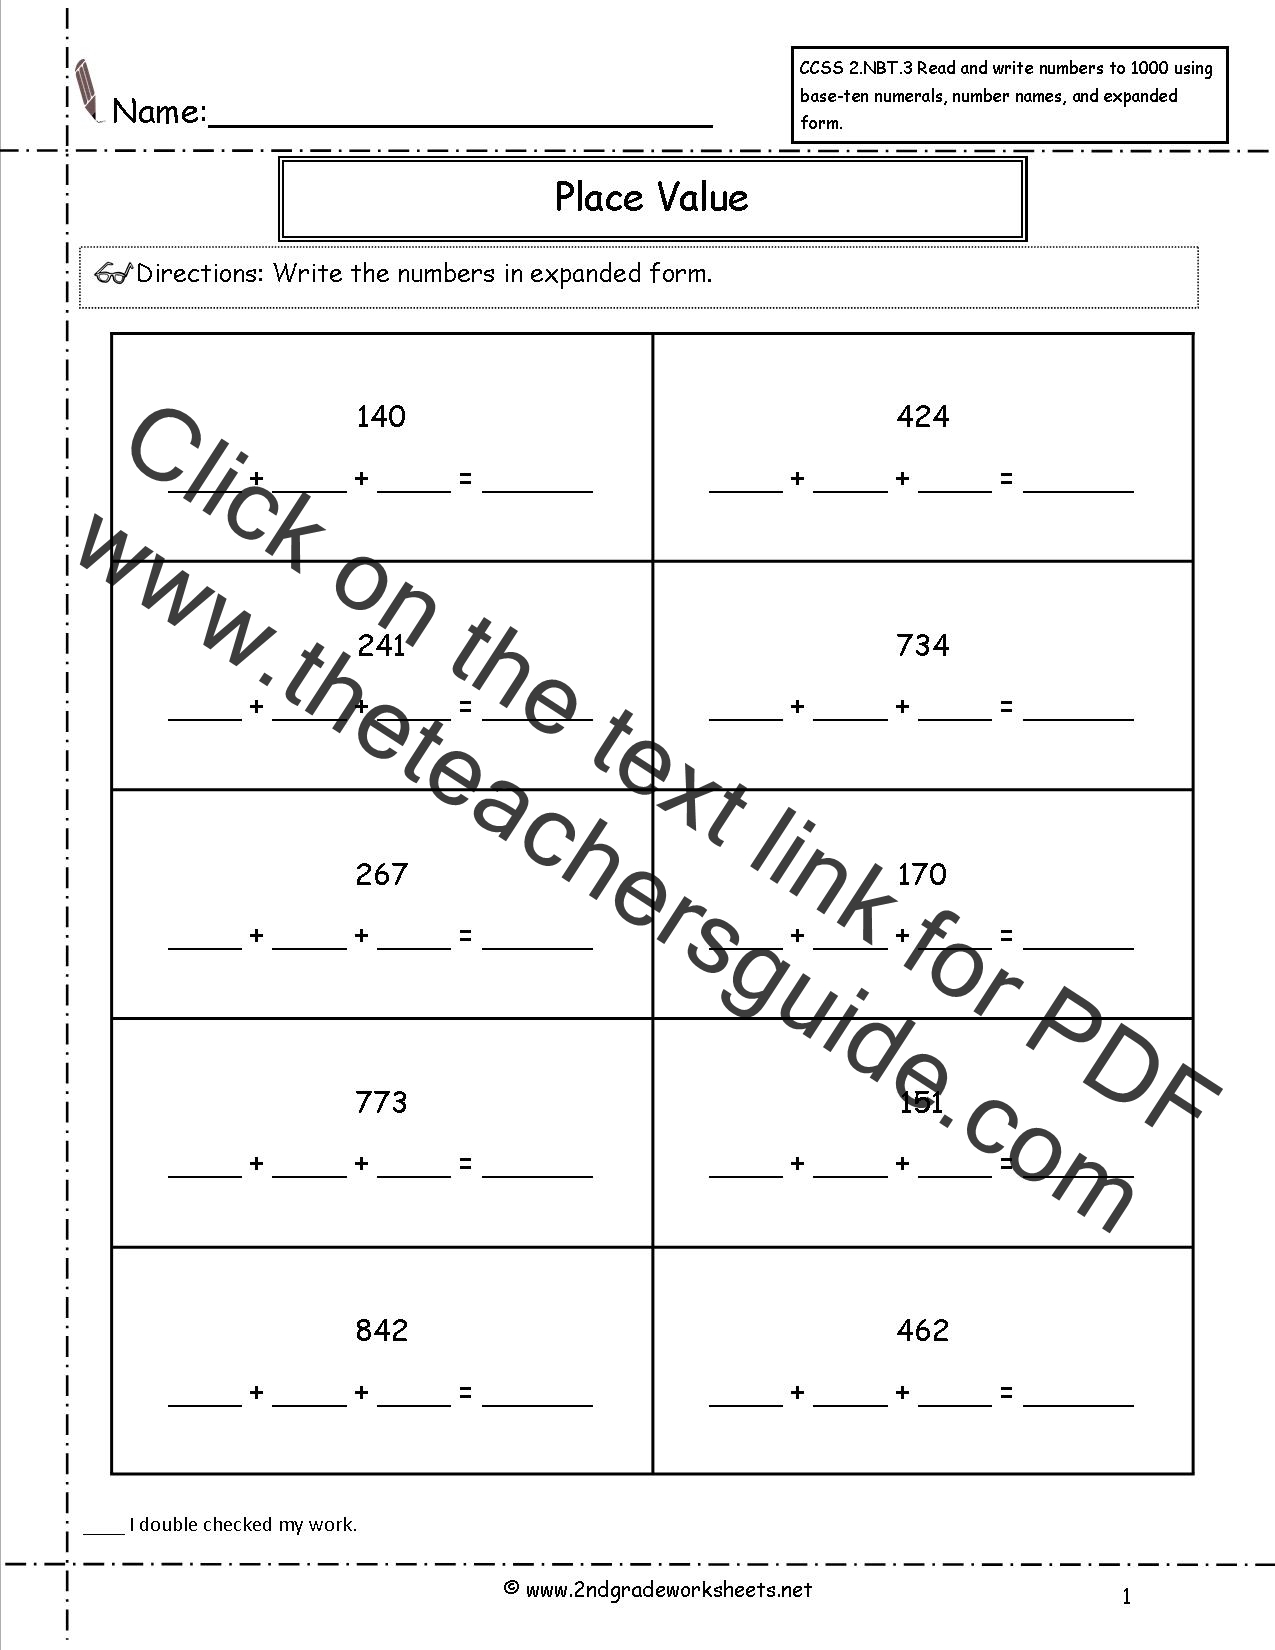 worksheet Base 10 Worksheets ccss 2 nbt 3 worksheets place value read and write numbers expanded notation